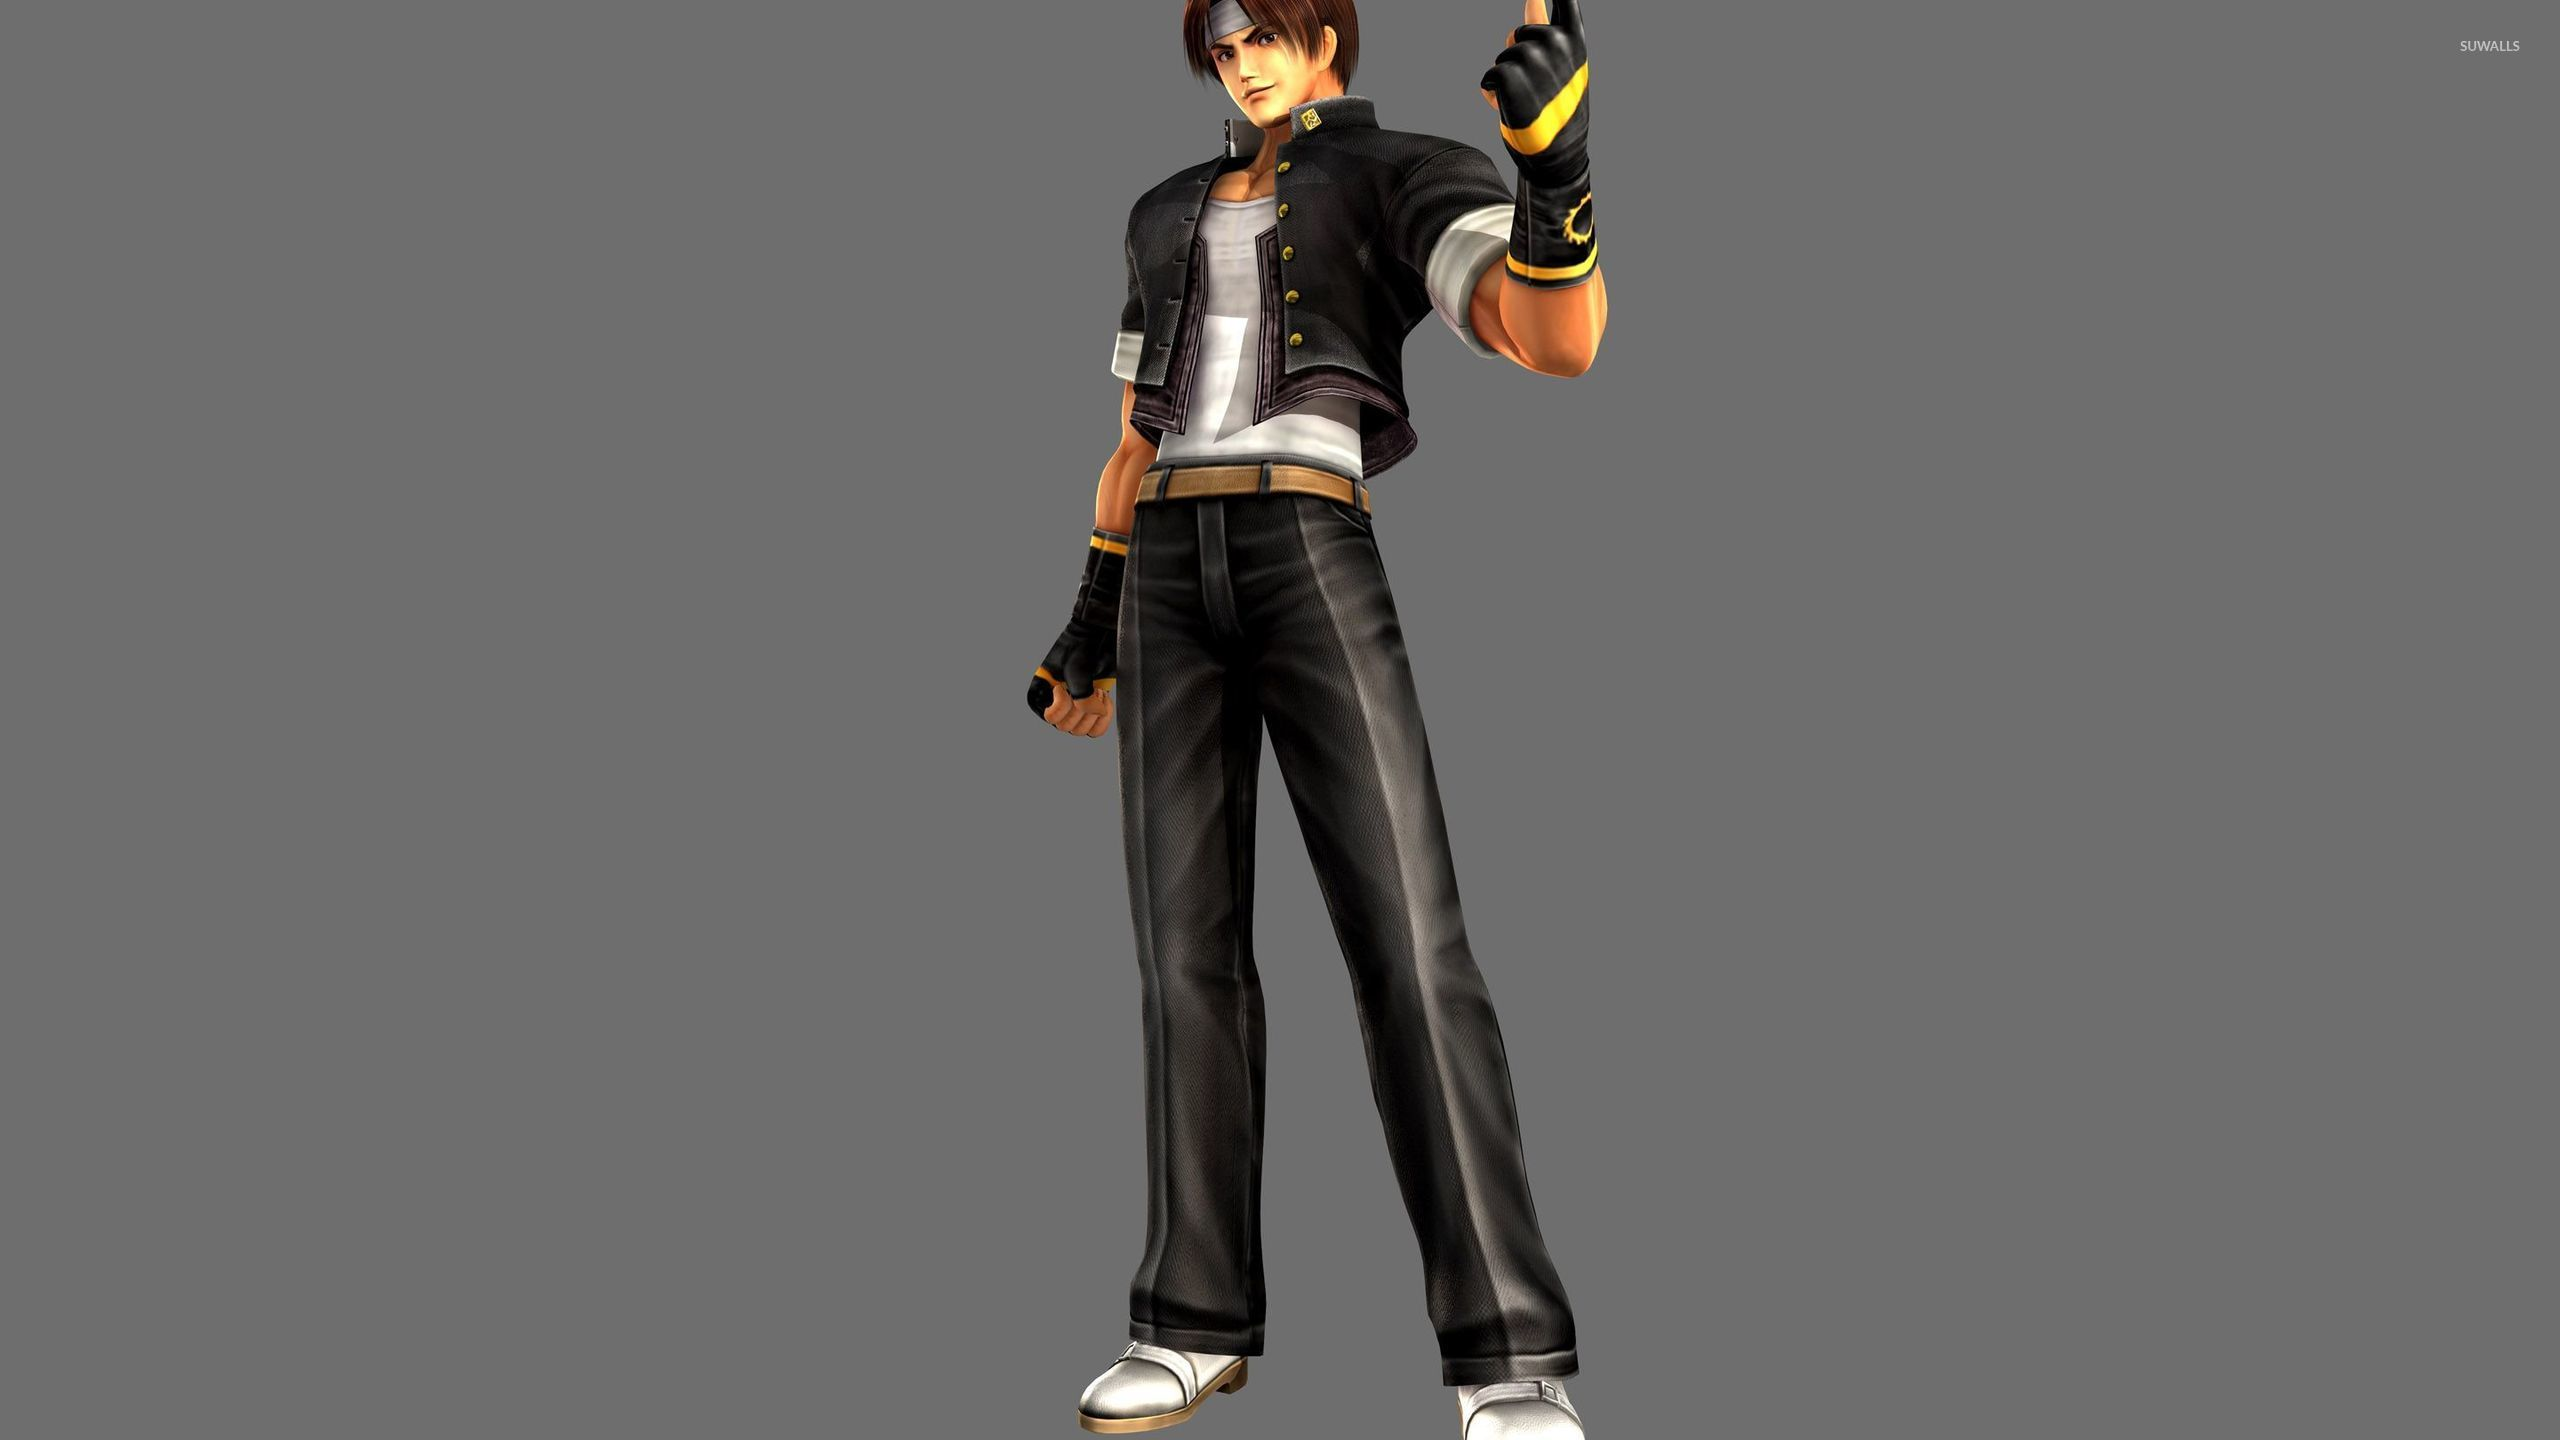 Kyo Kusanagi   The King of Fighters wallpaper   Game 2560x1440